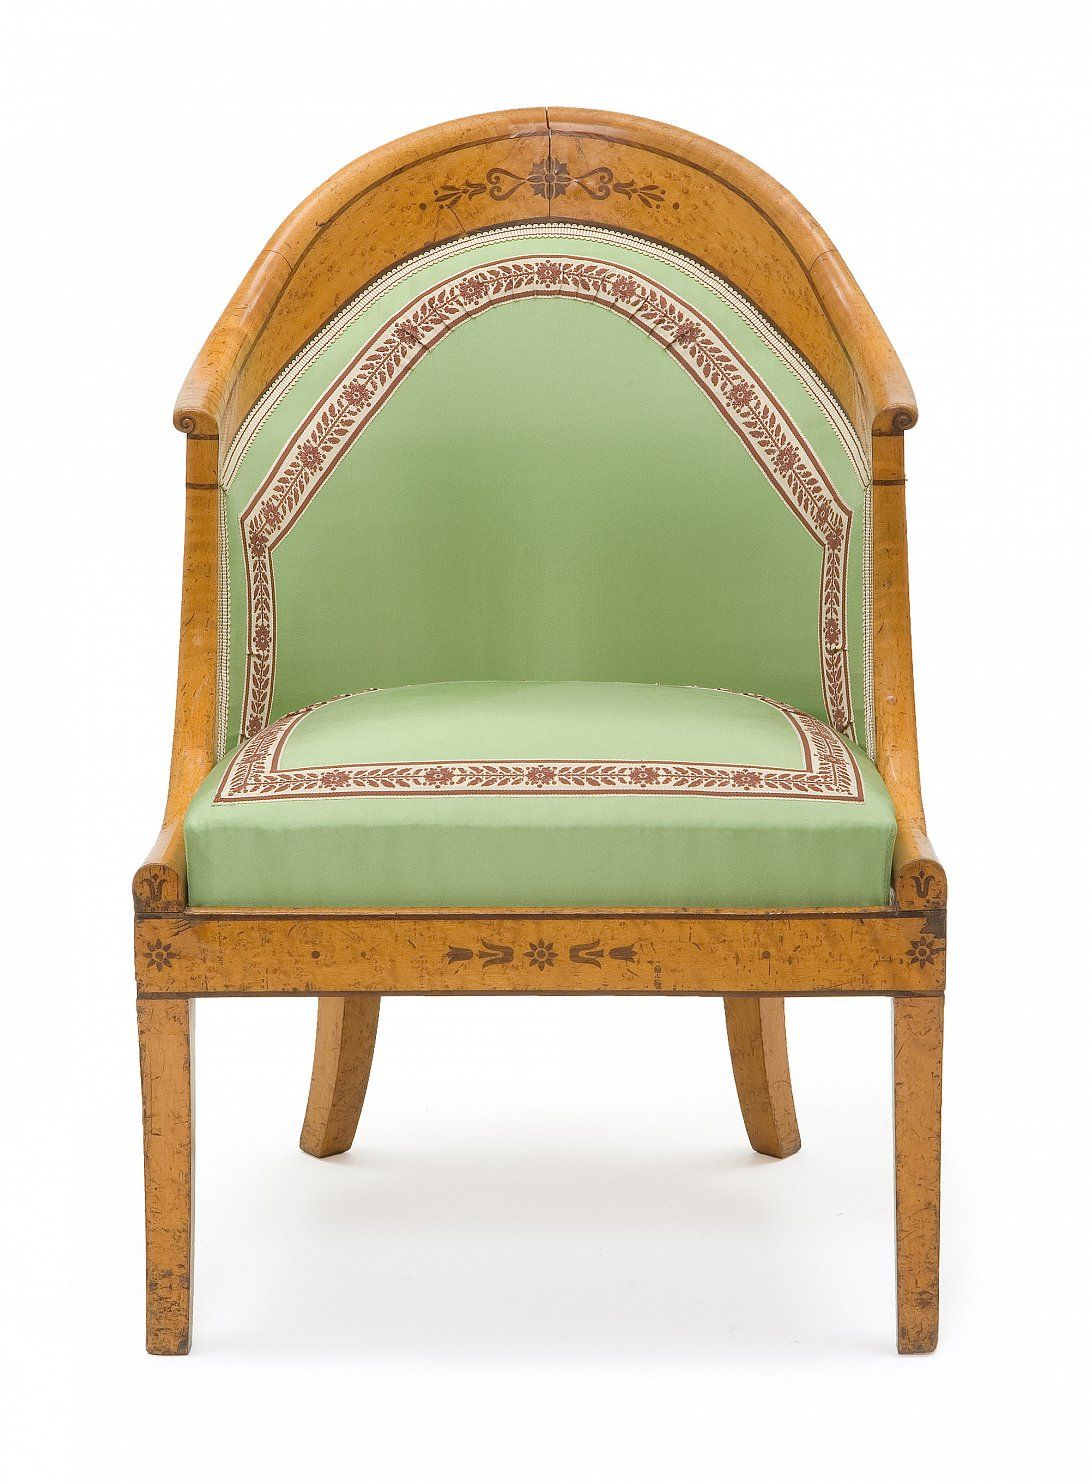 armchair gondola france charles x 1824 1830 lemon amaranth inlay